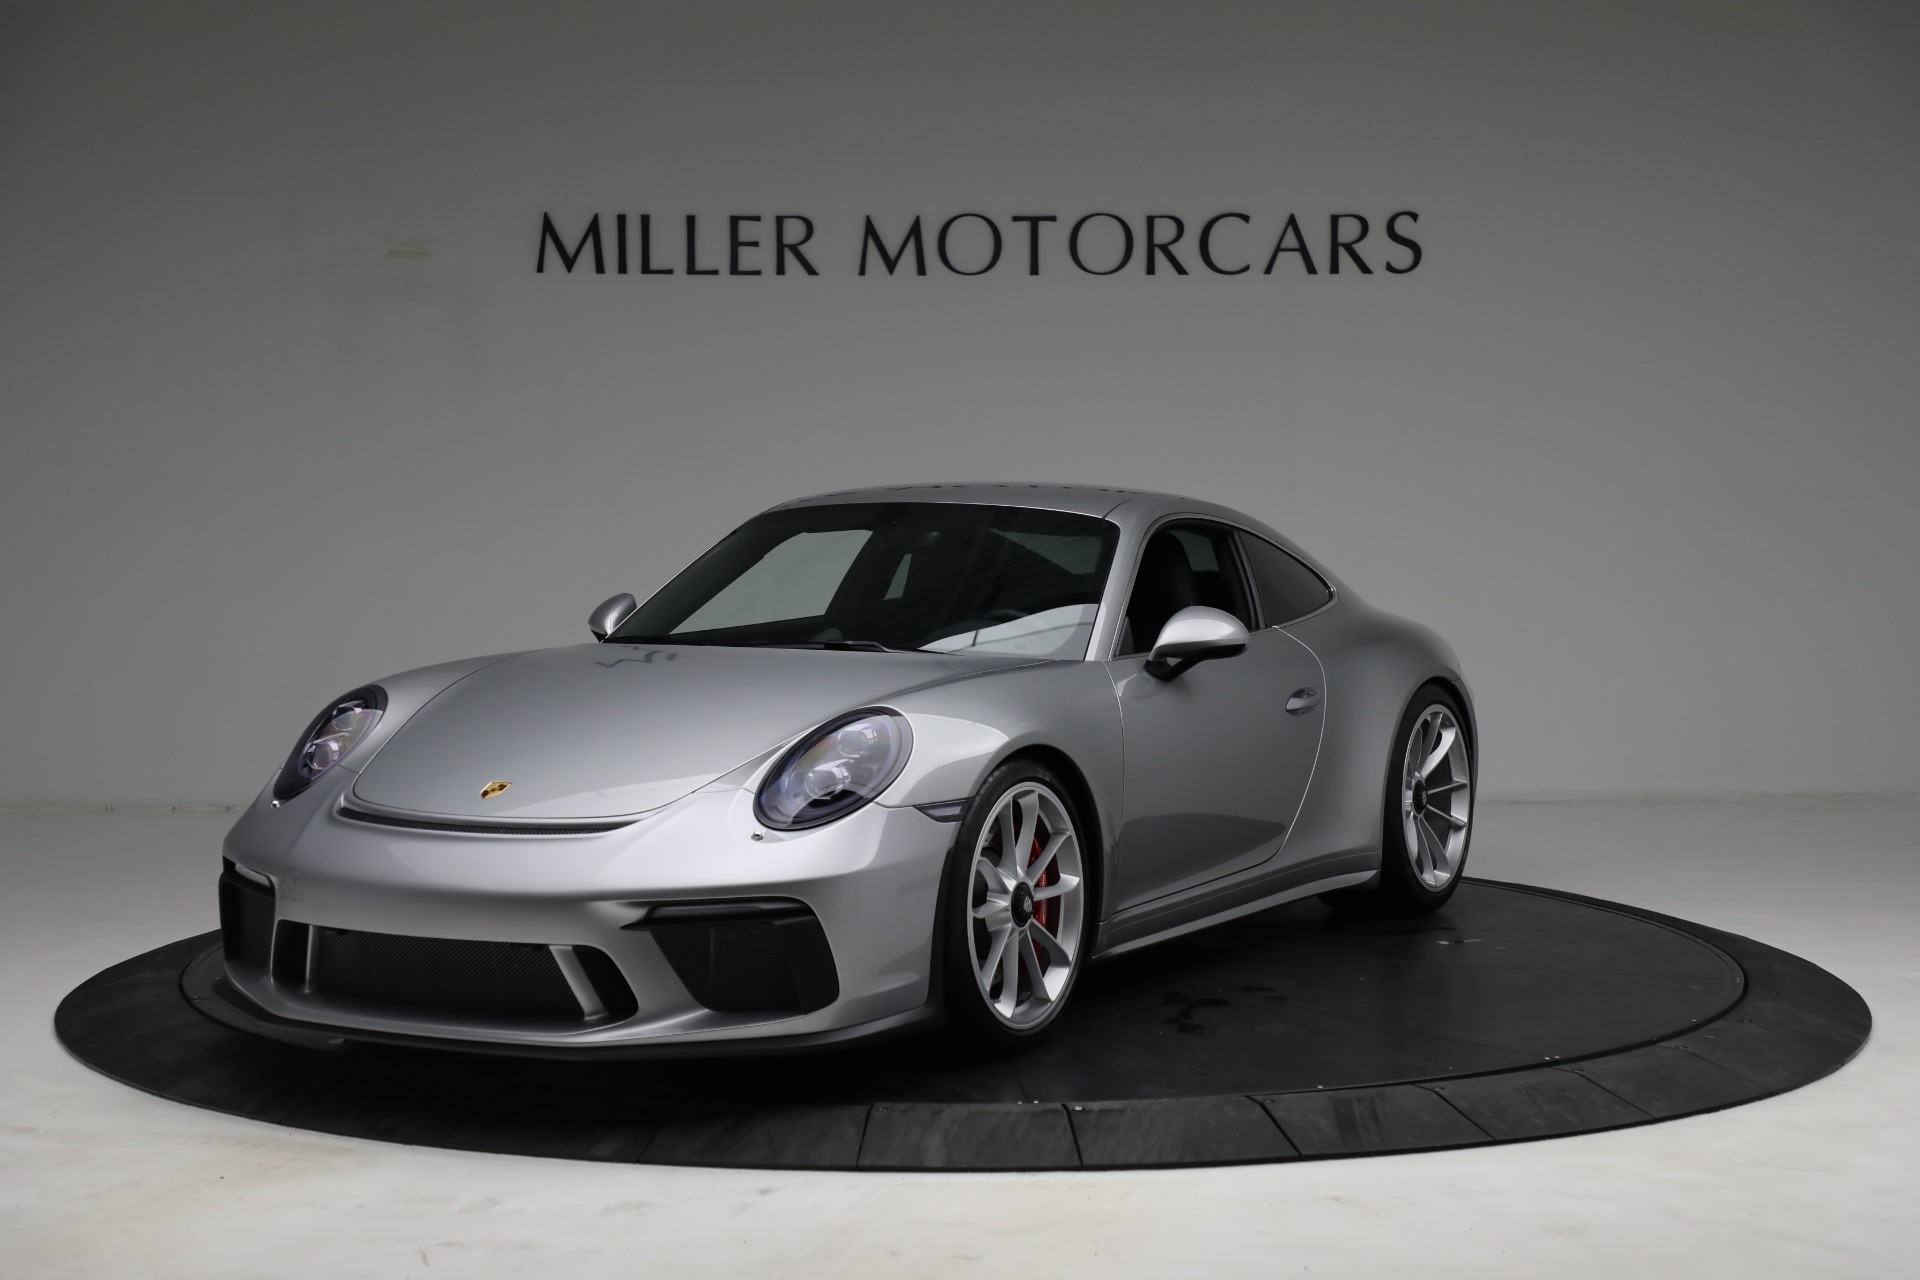 Used 2018 Porsche 911 GT3 Touring for sale $245,900 at Bugatti of Greenwich in Greenwich CT 06830 1